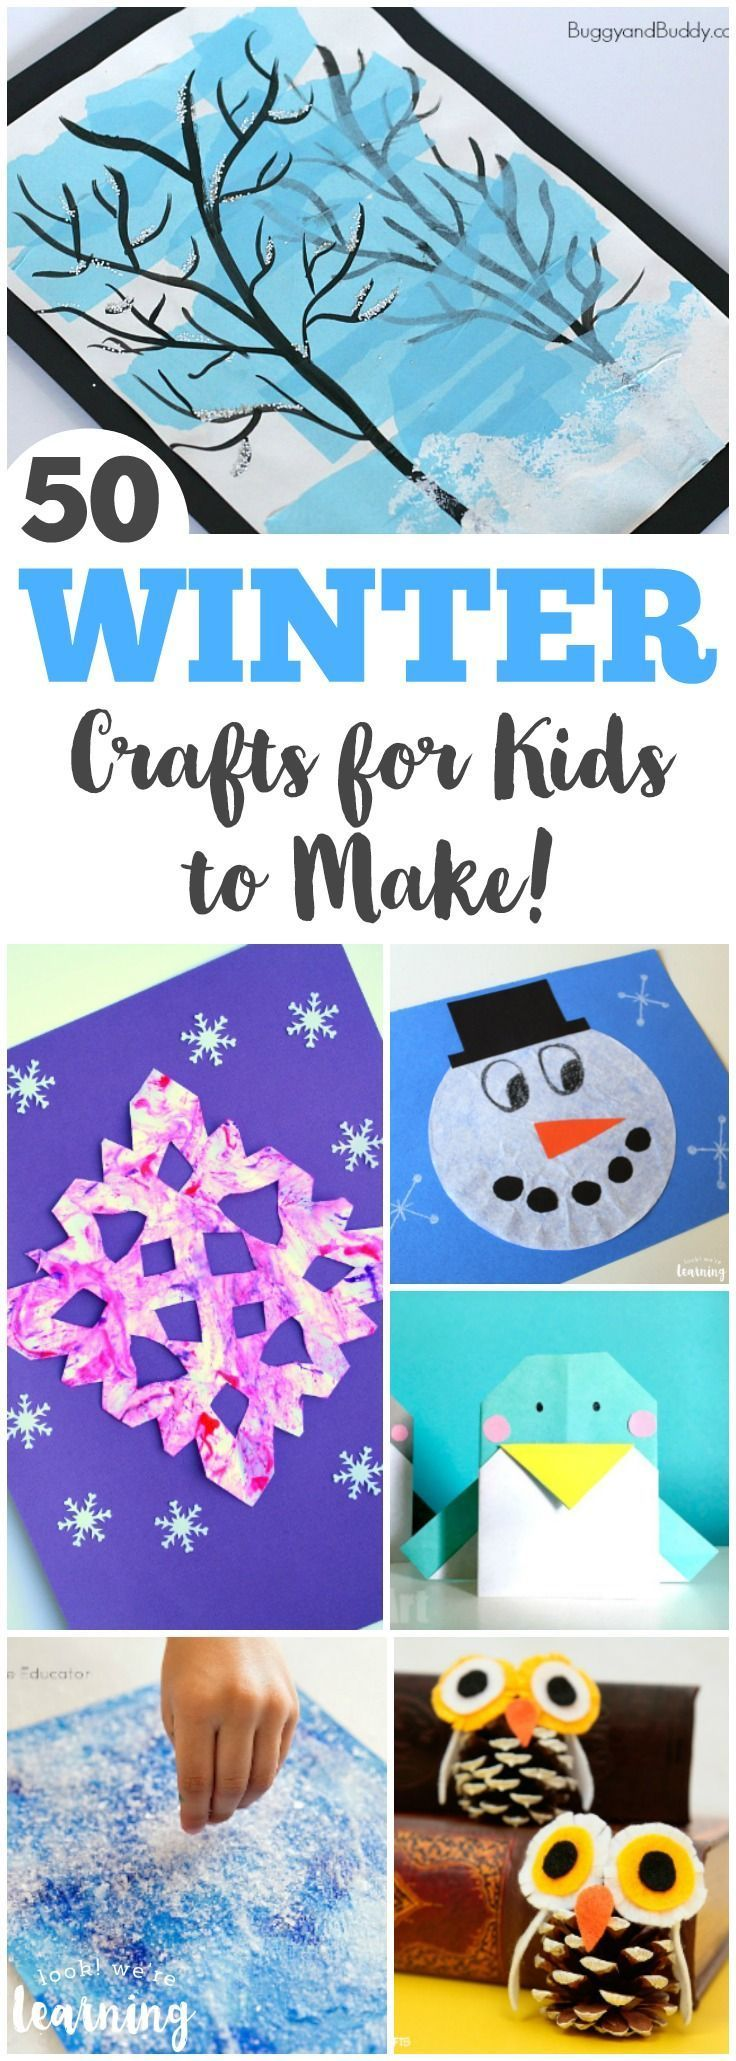 Winter is the perfect season for crafting! Share some of these fun and easy winter crafts for kids with your little ones! #KidsCrafts #kidsactivities